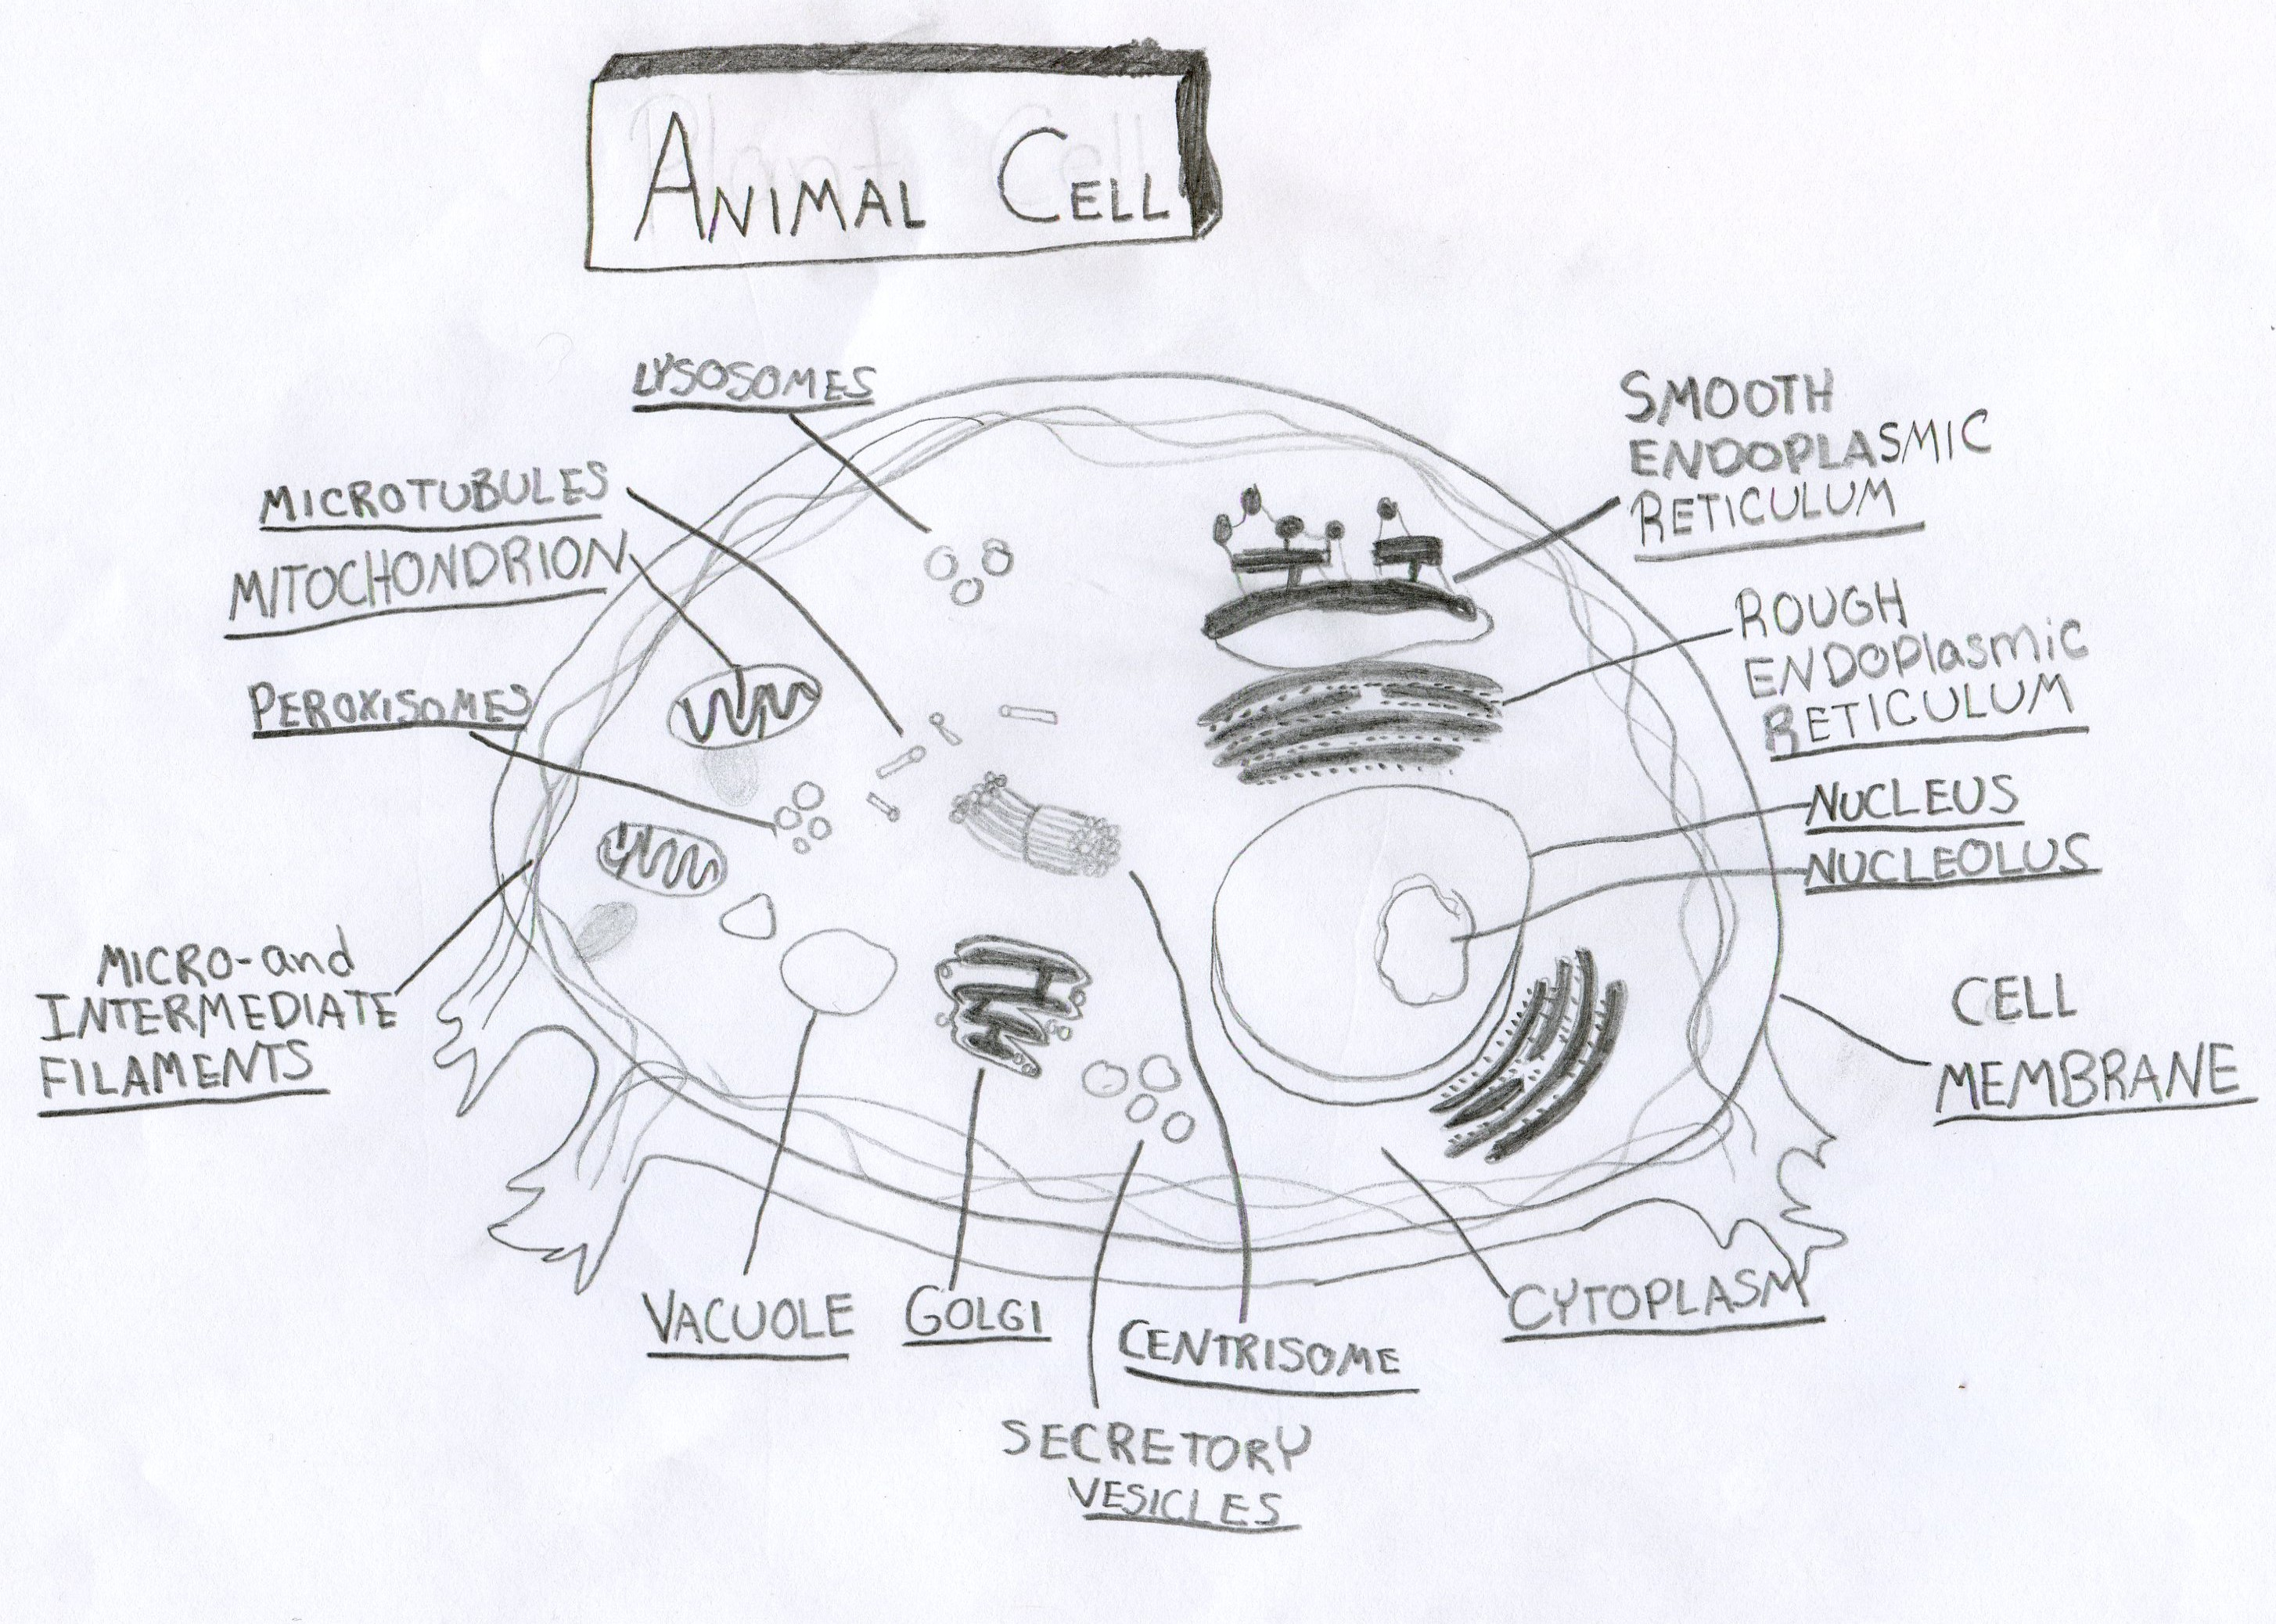 endoplasmic reticulum animal cell diagram lutron 3 way dimmer switch wiring article posted january 7 2011 at 09 10 pm gmt  comment